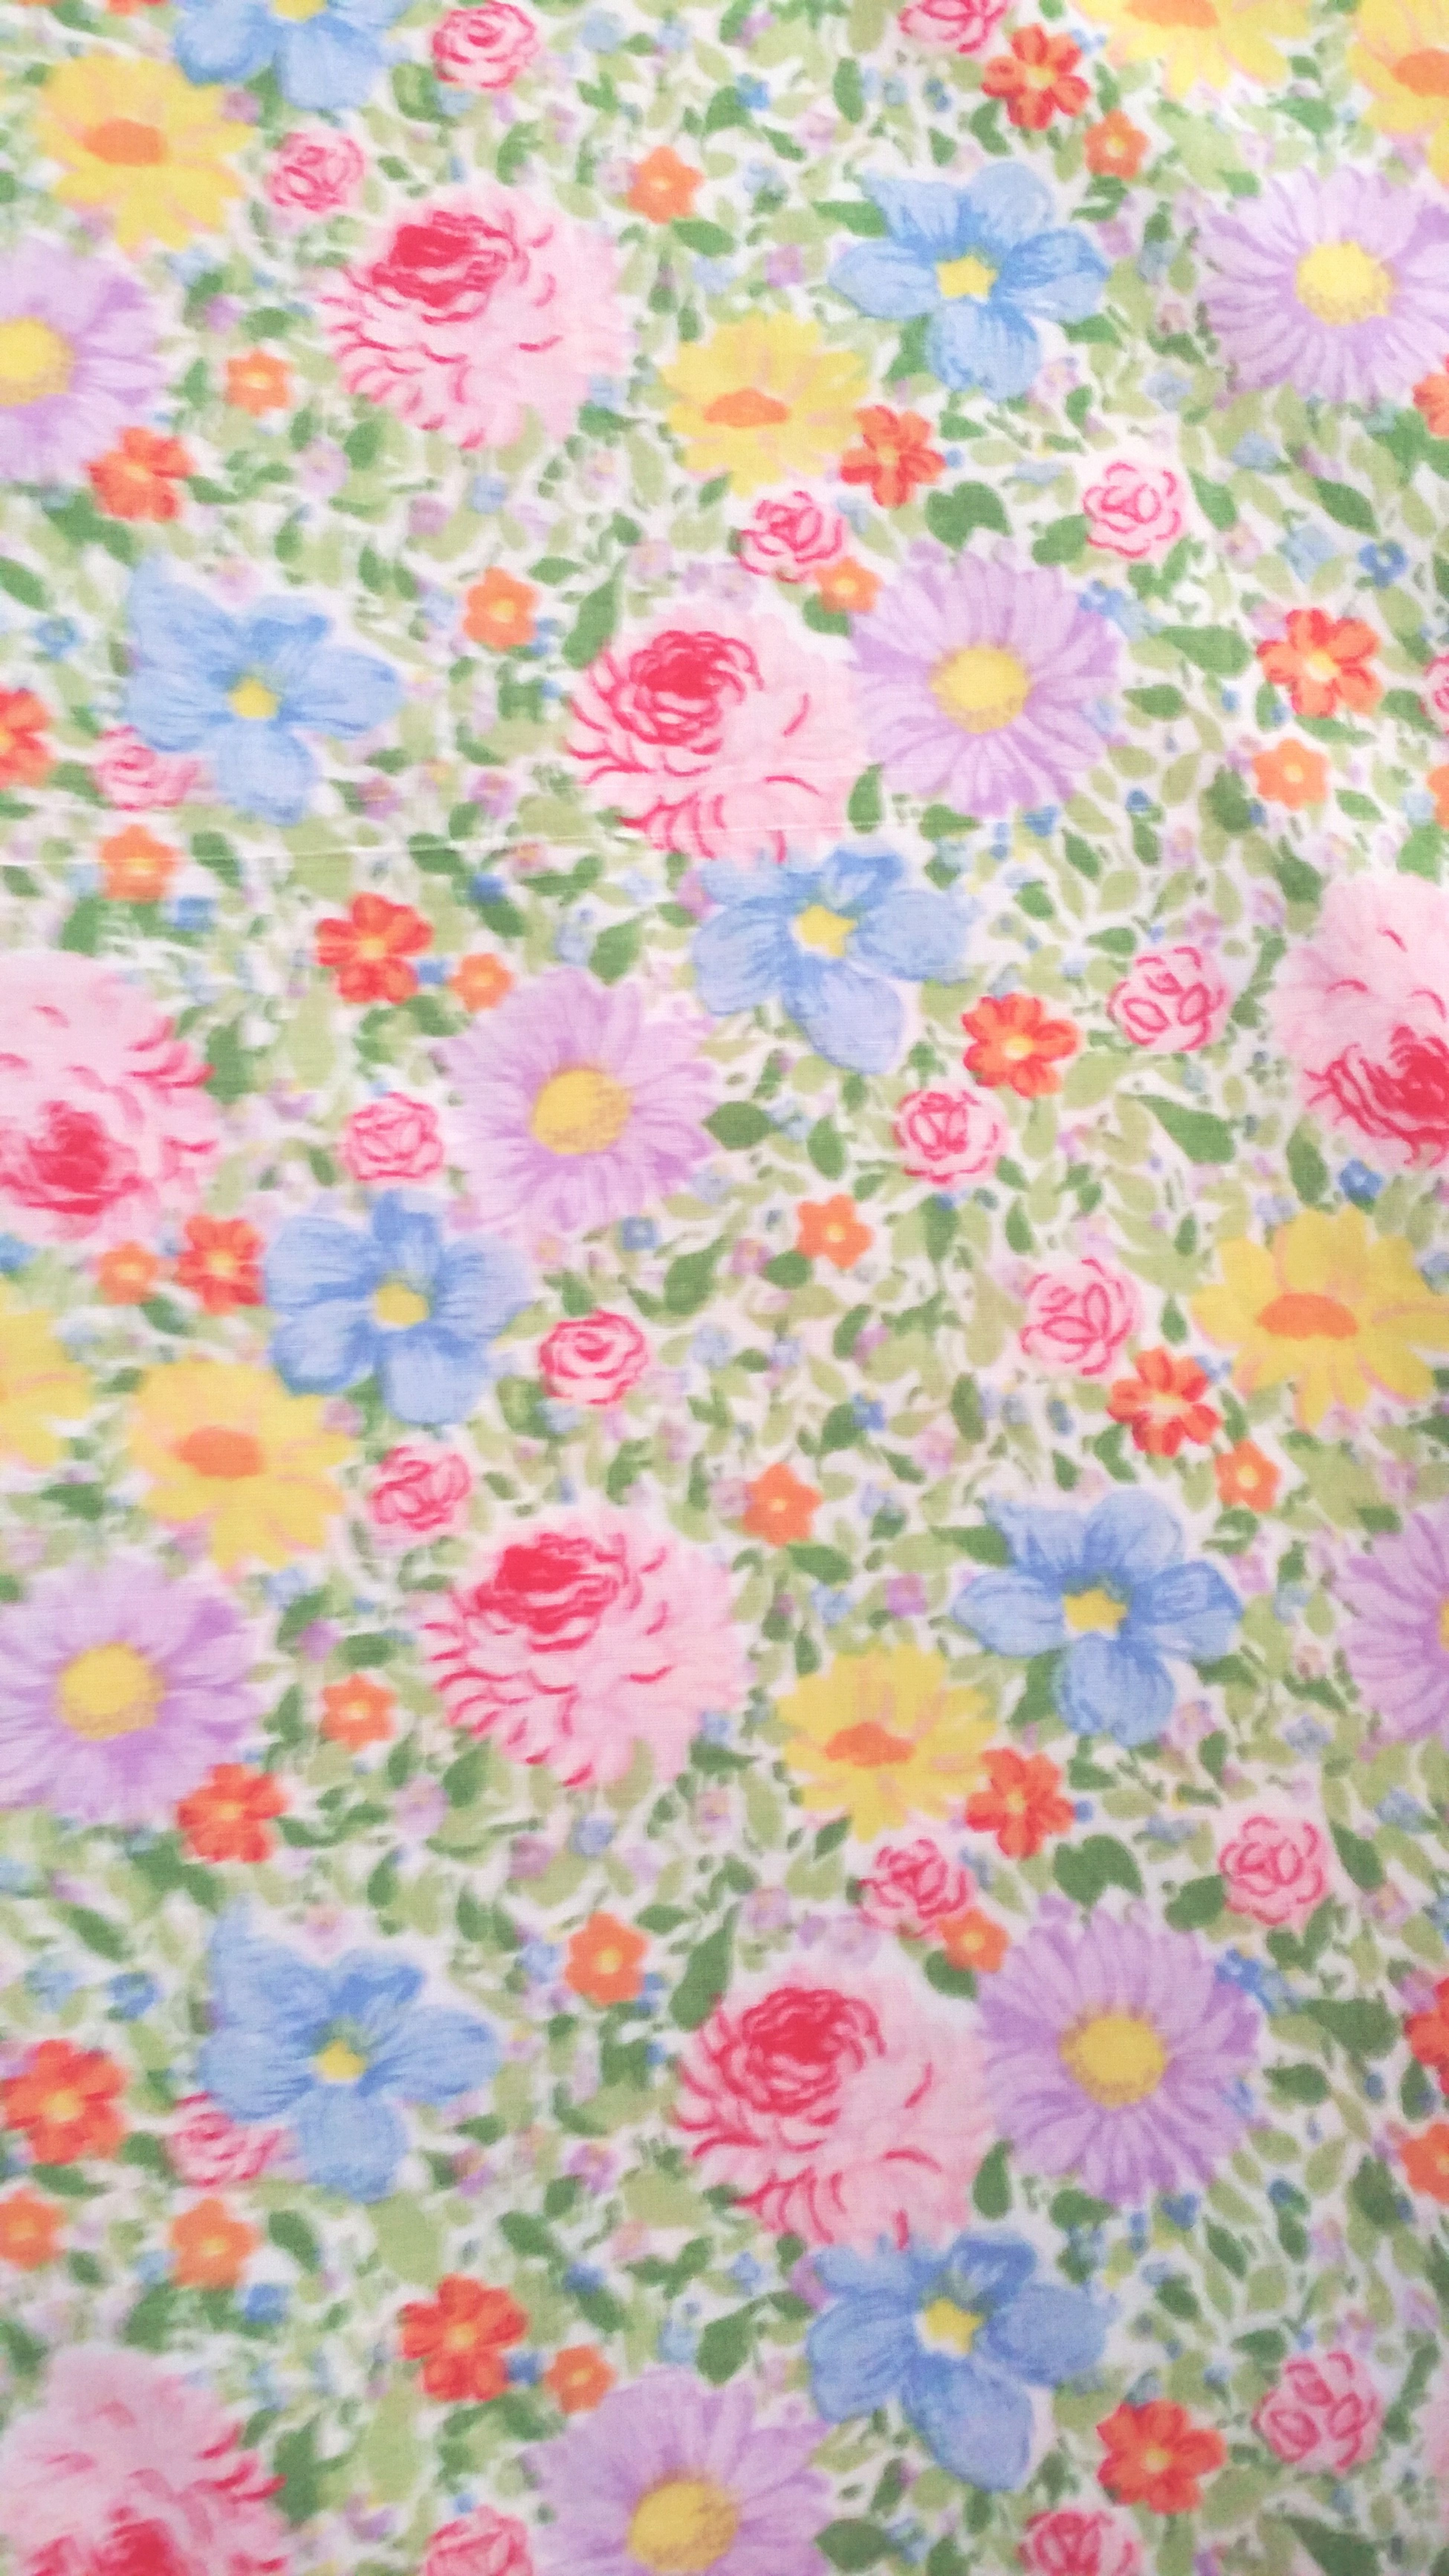 Retro print pillowcase my mom made when i was a kid. Pattern Floral Pattern Multi Colored Close-up January 2017 FairfaxCalifornia Sewing Fabr8c Childhood